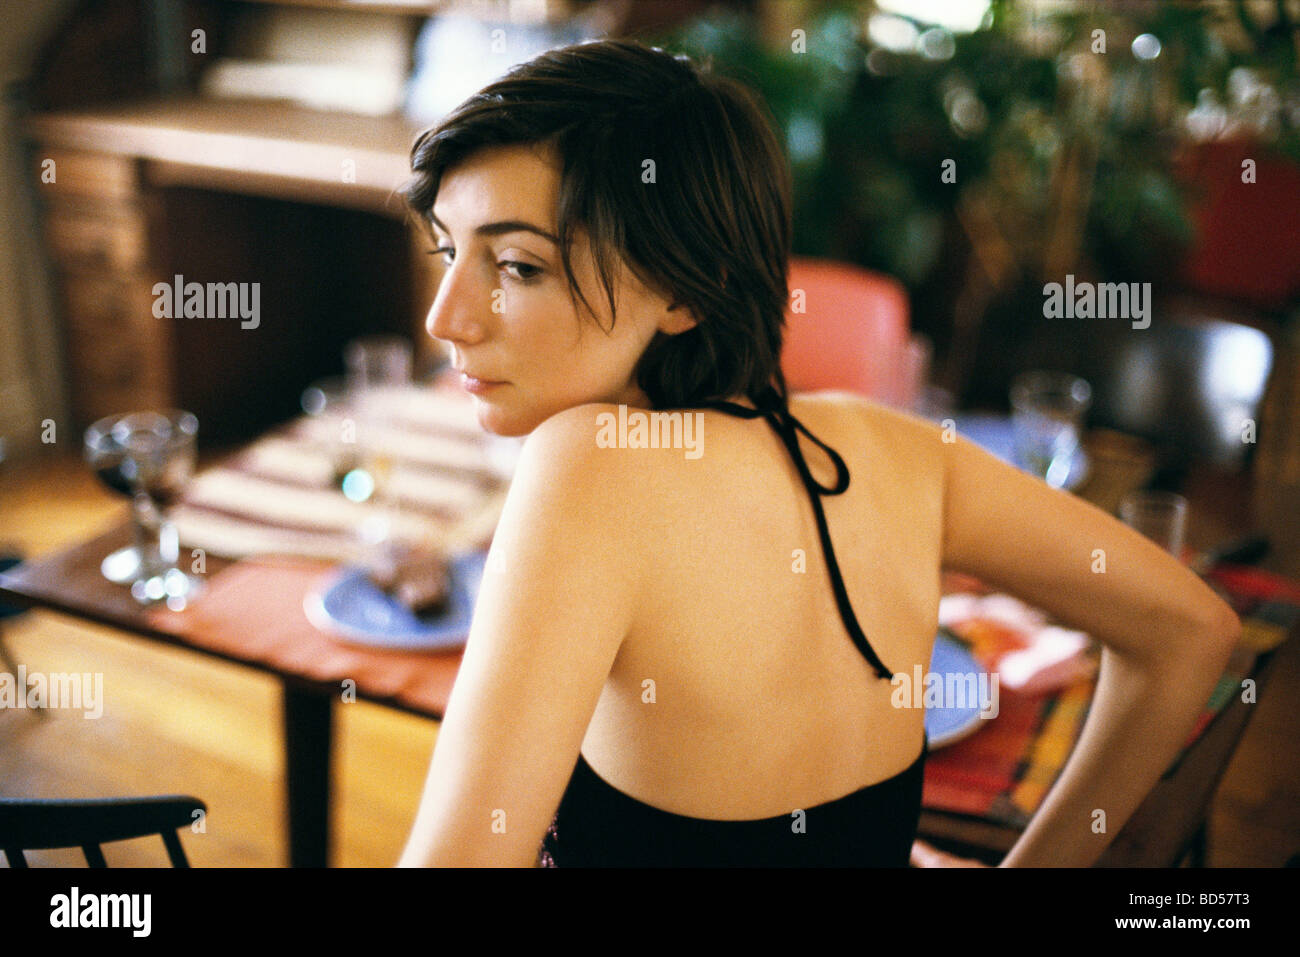 Woman looking over shoulder contemplatively looking away, set table in background - Stock Image